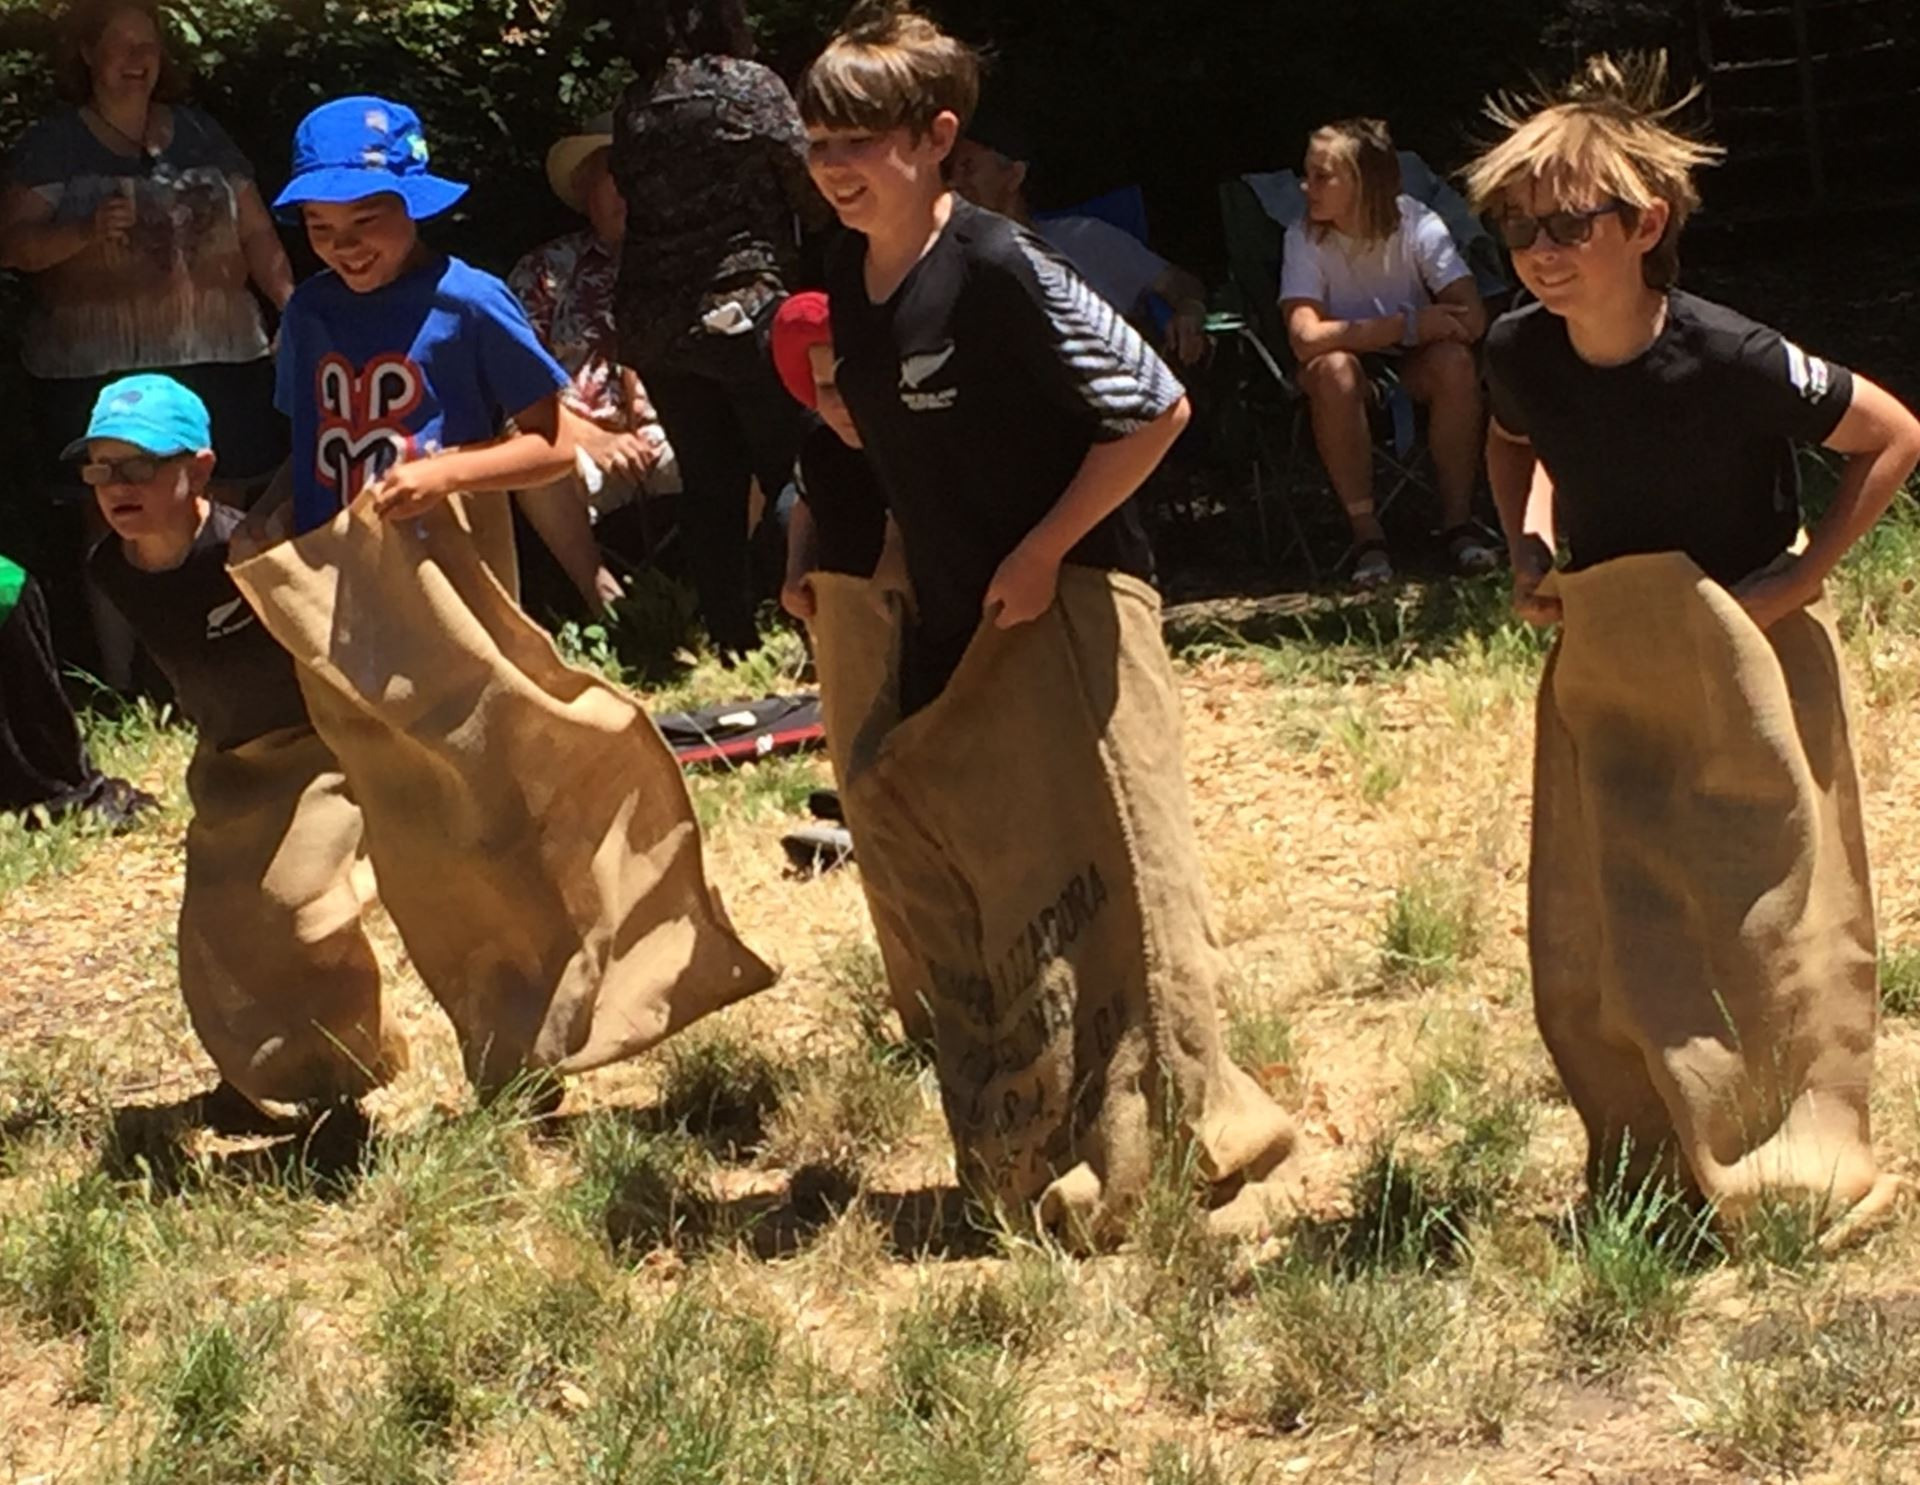 sack race at 2019 sf kiwis picnic